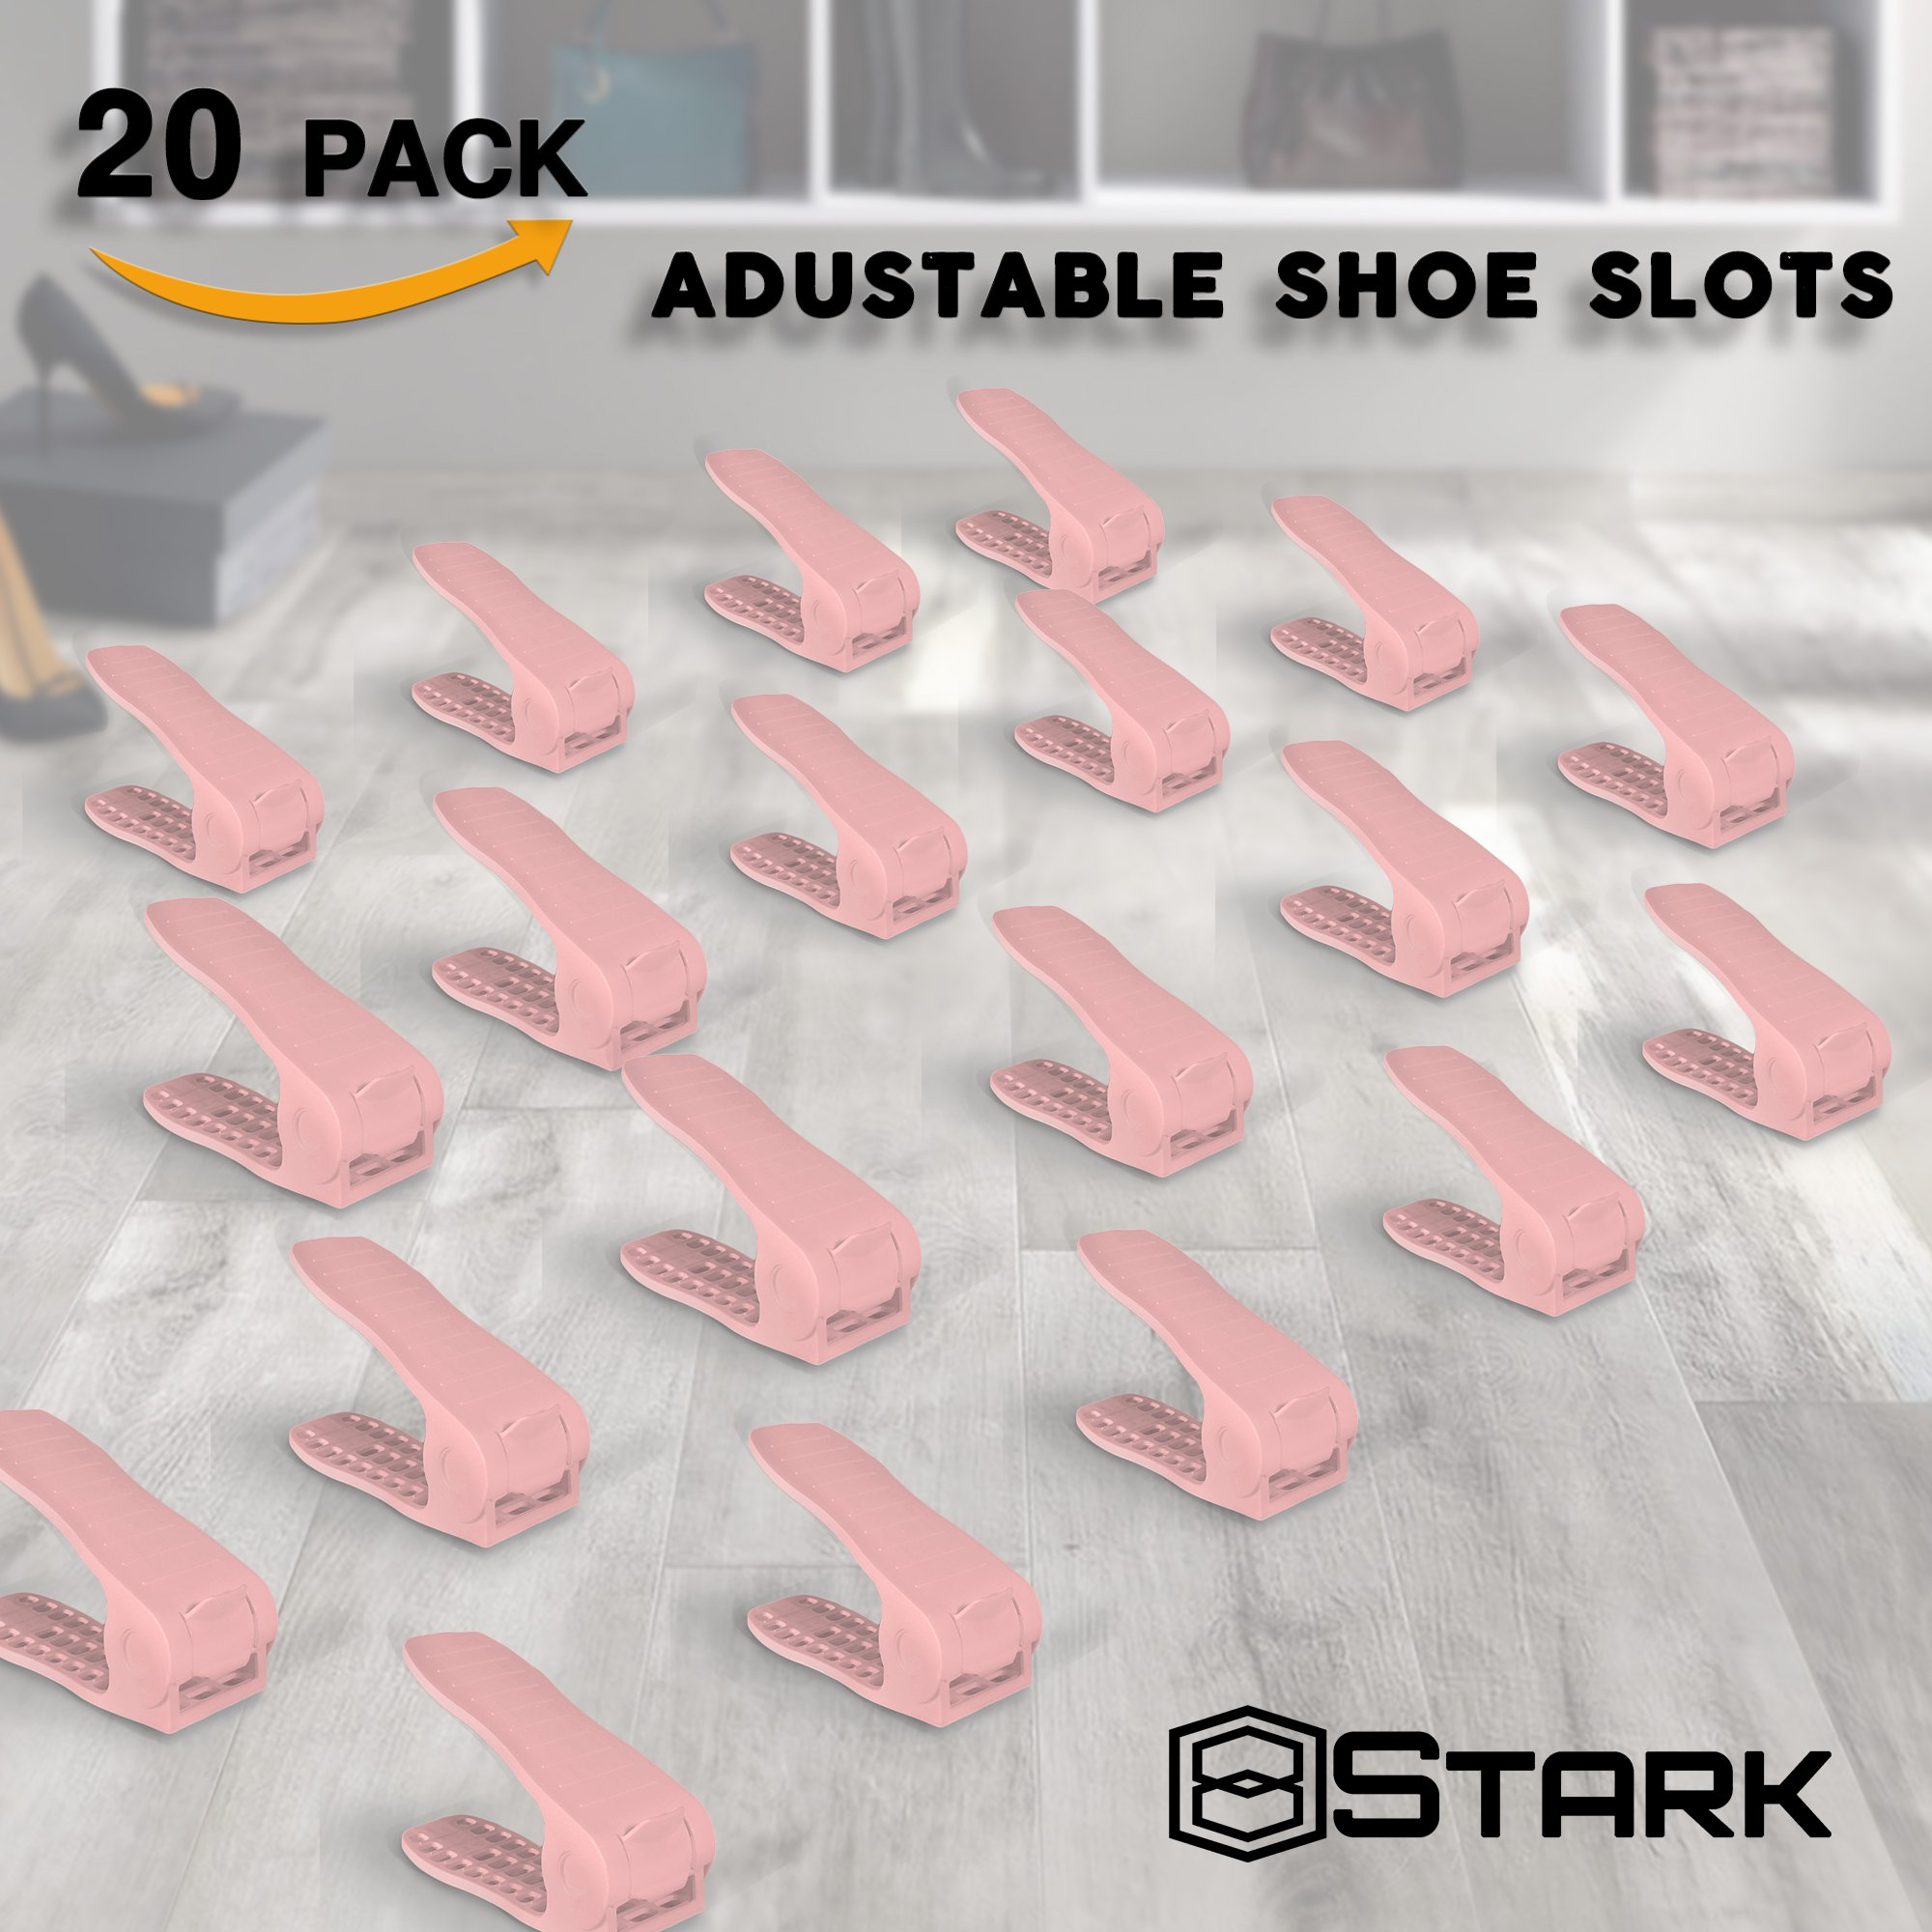 [UPGRADED] Shoe Organizer - Adjustable Display Closet Space Saver - Small Double Rack Shoe Slot for 1 Pair - Pink - 20 Pcs by Stark (Image #1)